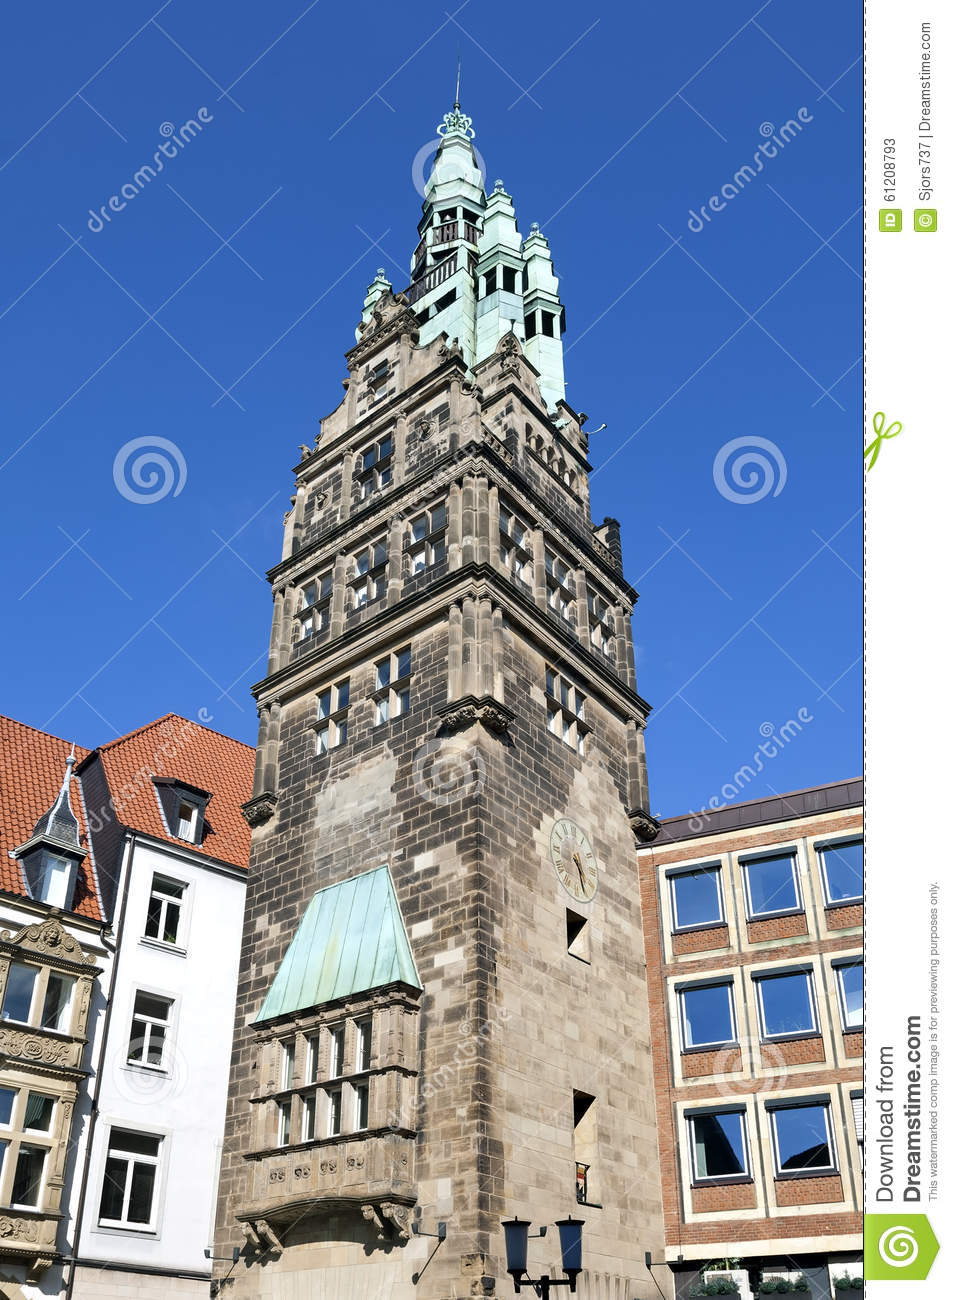 Ancient City Hall Tower, Munster, Germany Stock Photo.